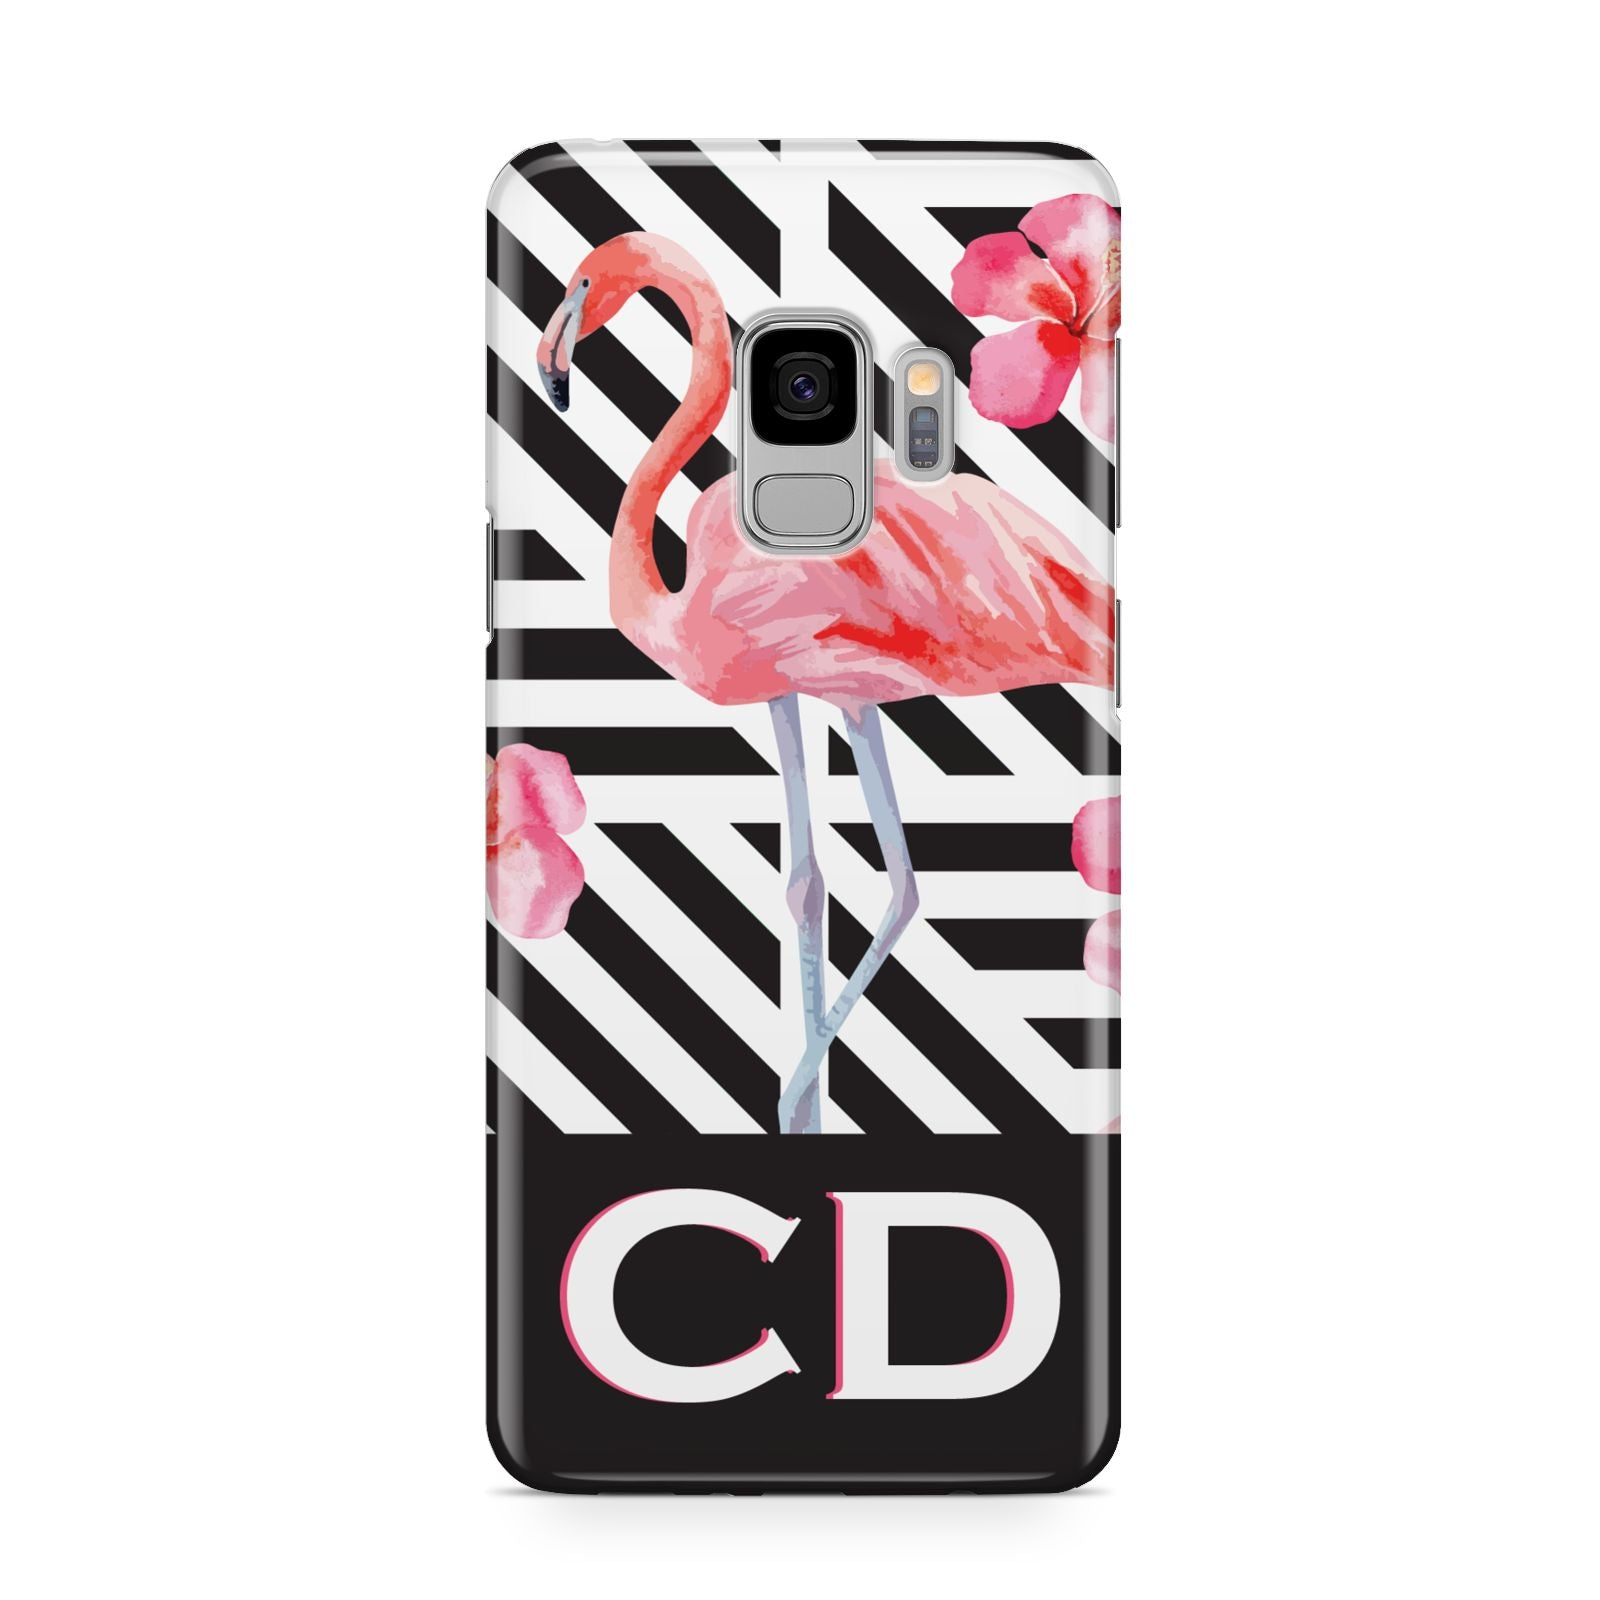 Flamingo Black Geometric Samsung Galaxy S9 Case